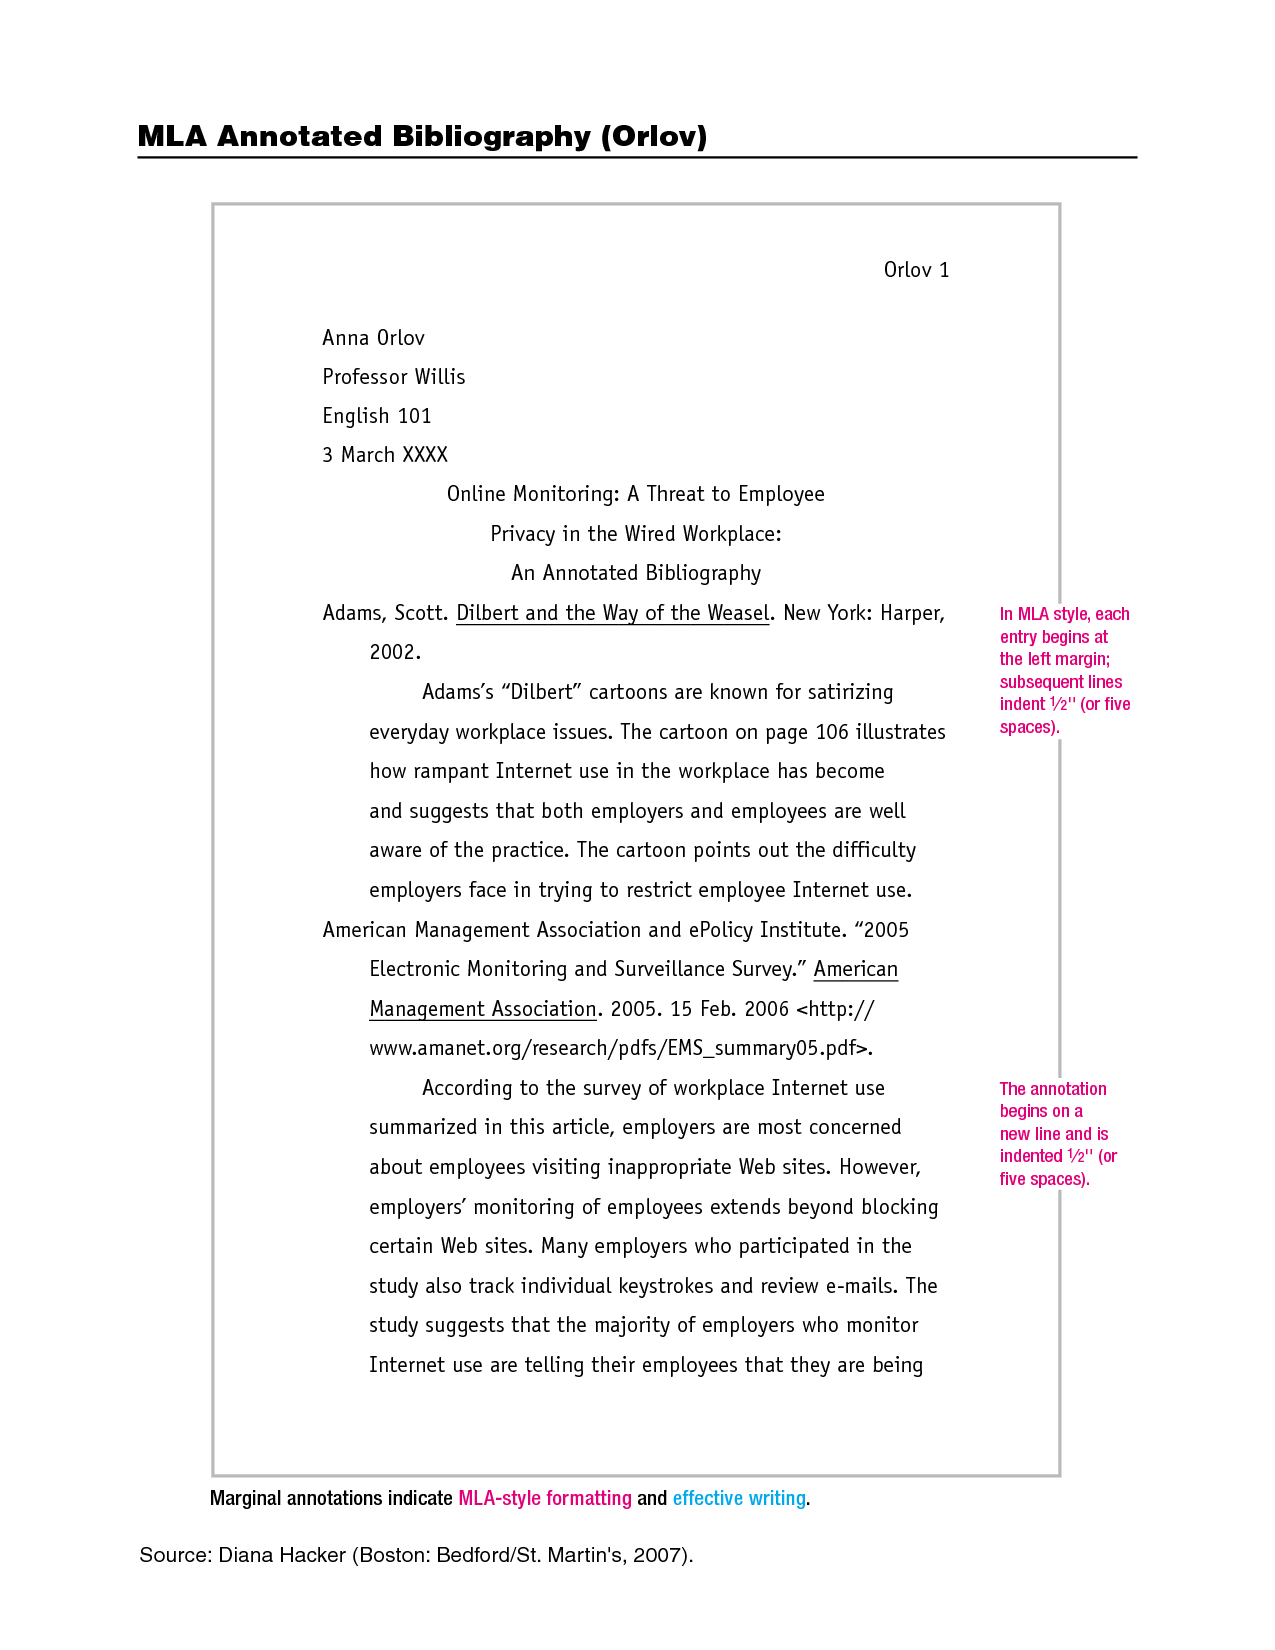 Writing a Bibliography: MLA Format